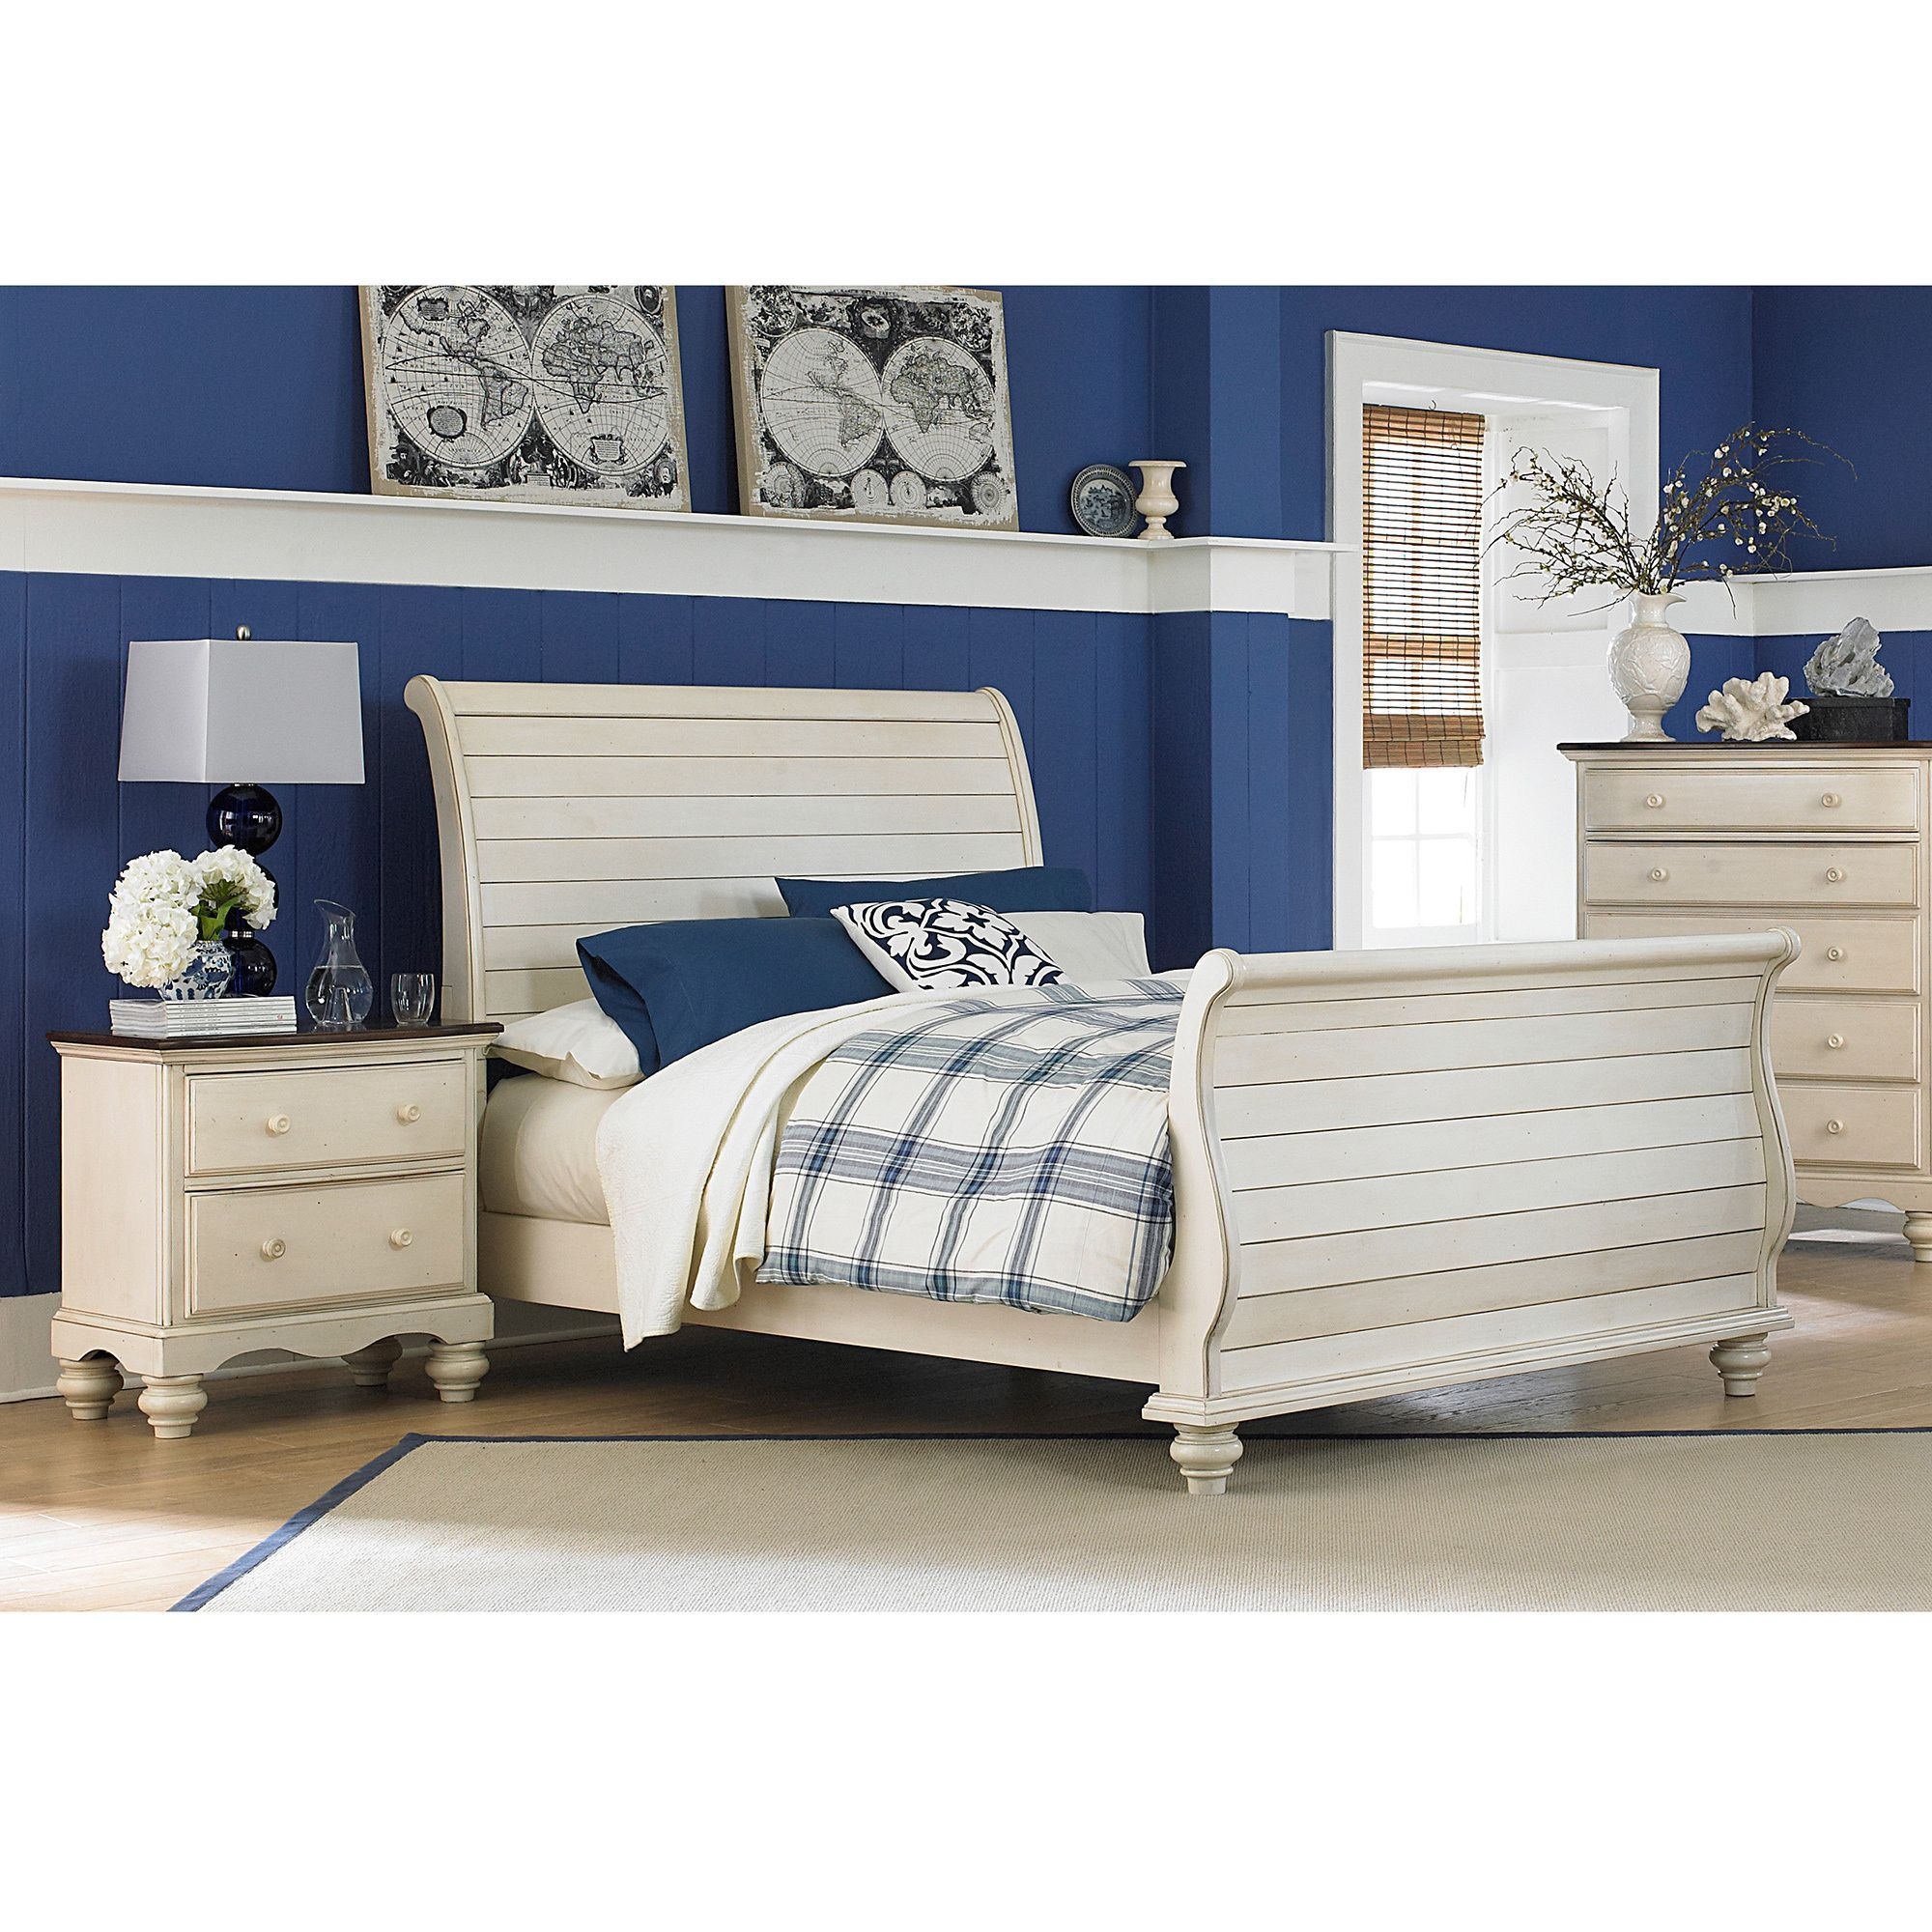 Pine island sleigh bed overstock shopping great deals on